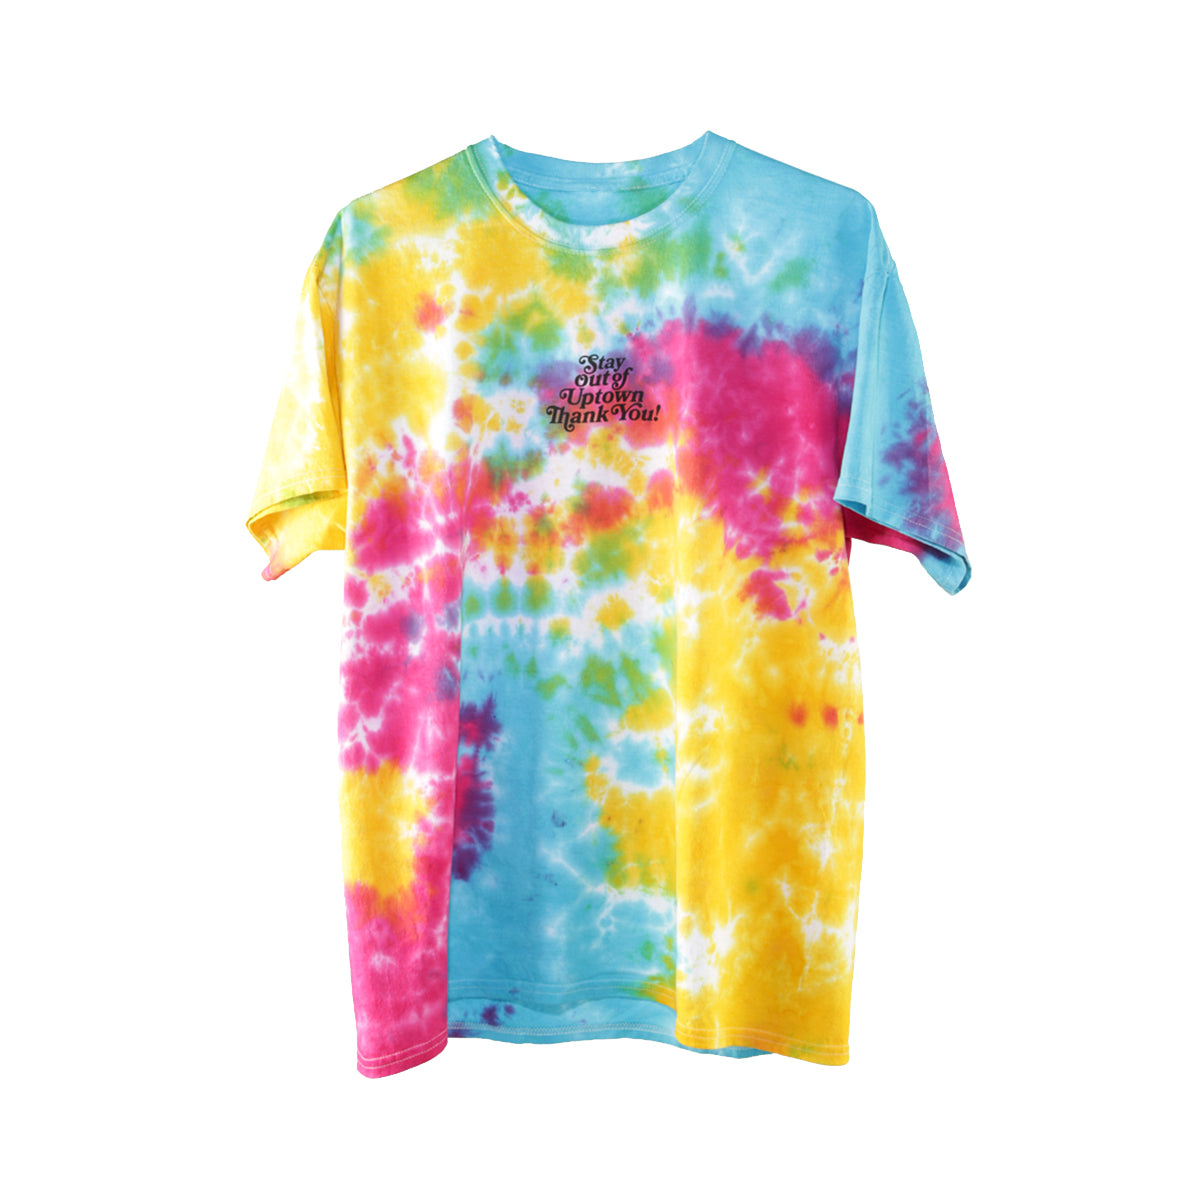 Stay Out of Uptown Tie Dye - Multi-rainbow